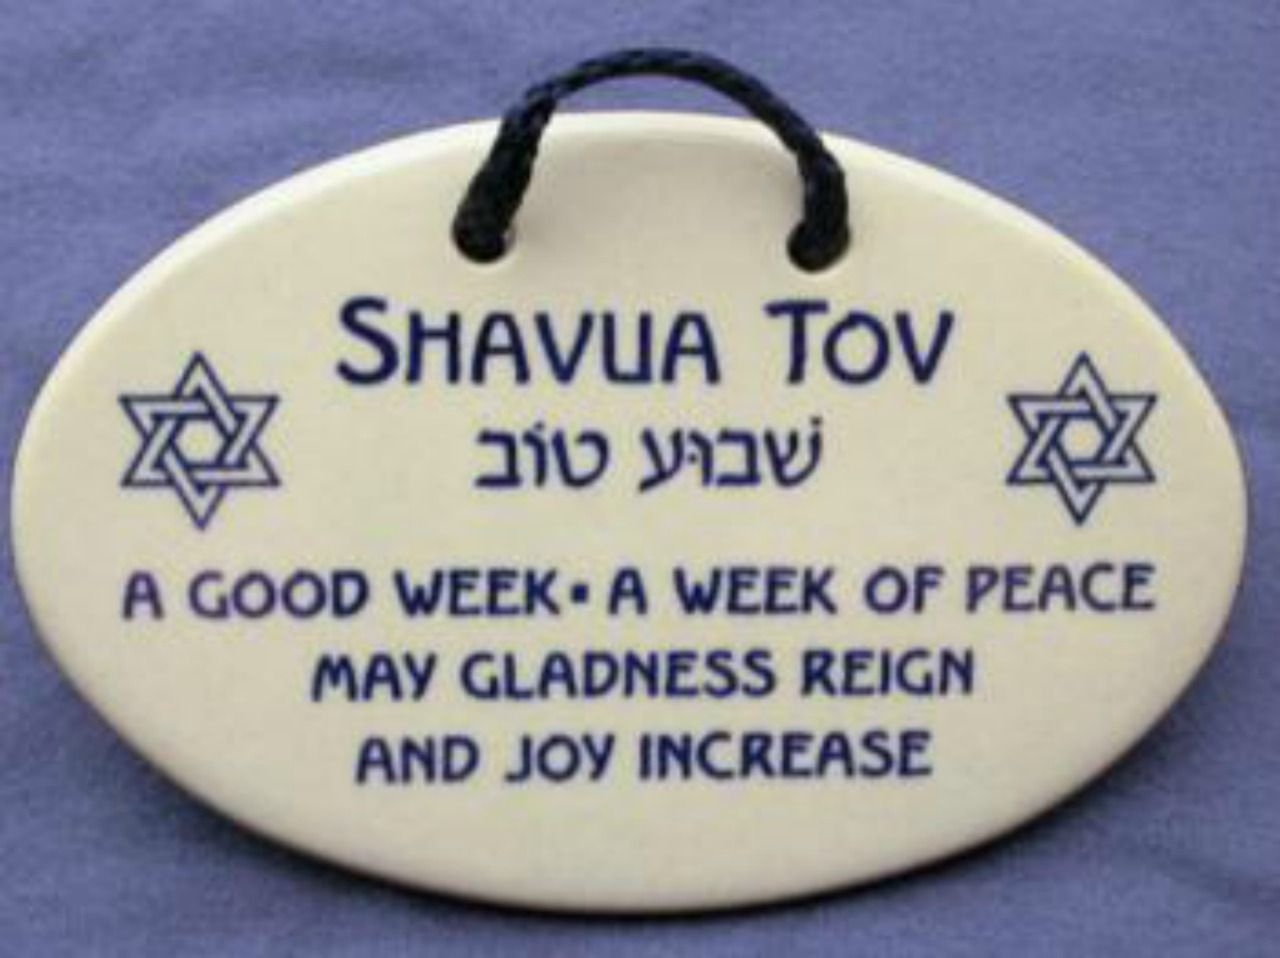 Used As A Greeting A Good Bye After Shabbat On Sat Nts May Be